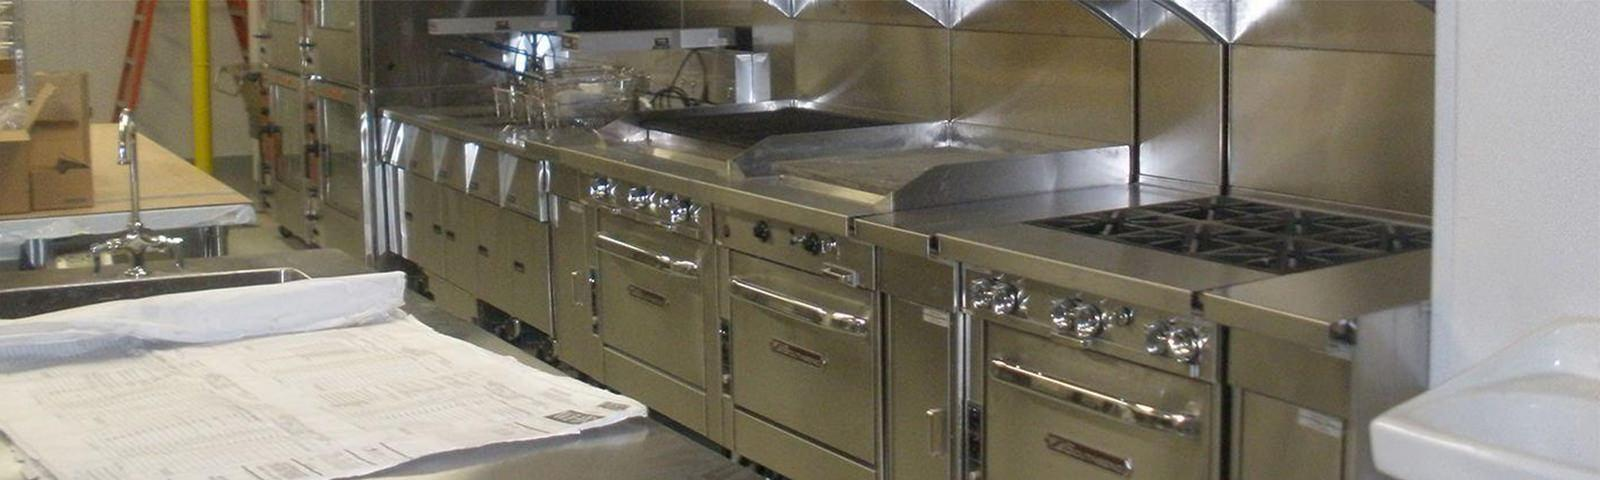 Commercial Appliance Repairs